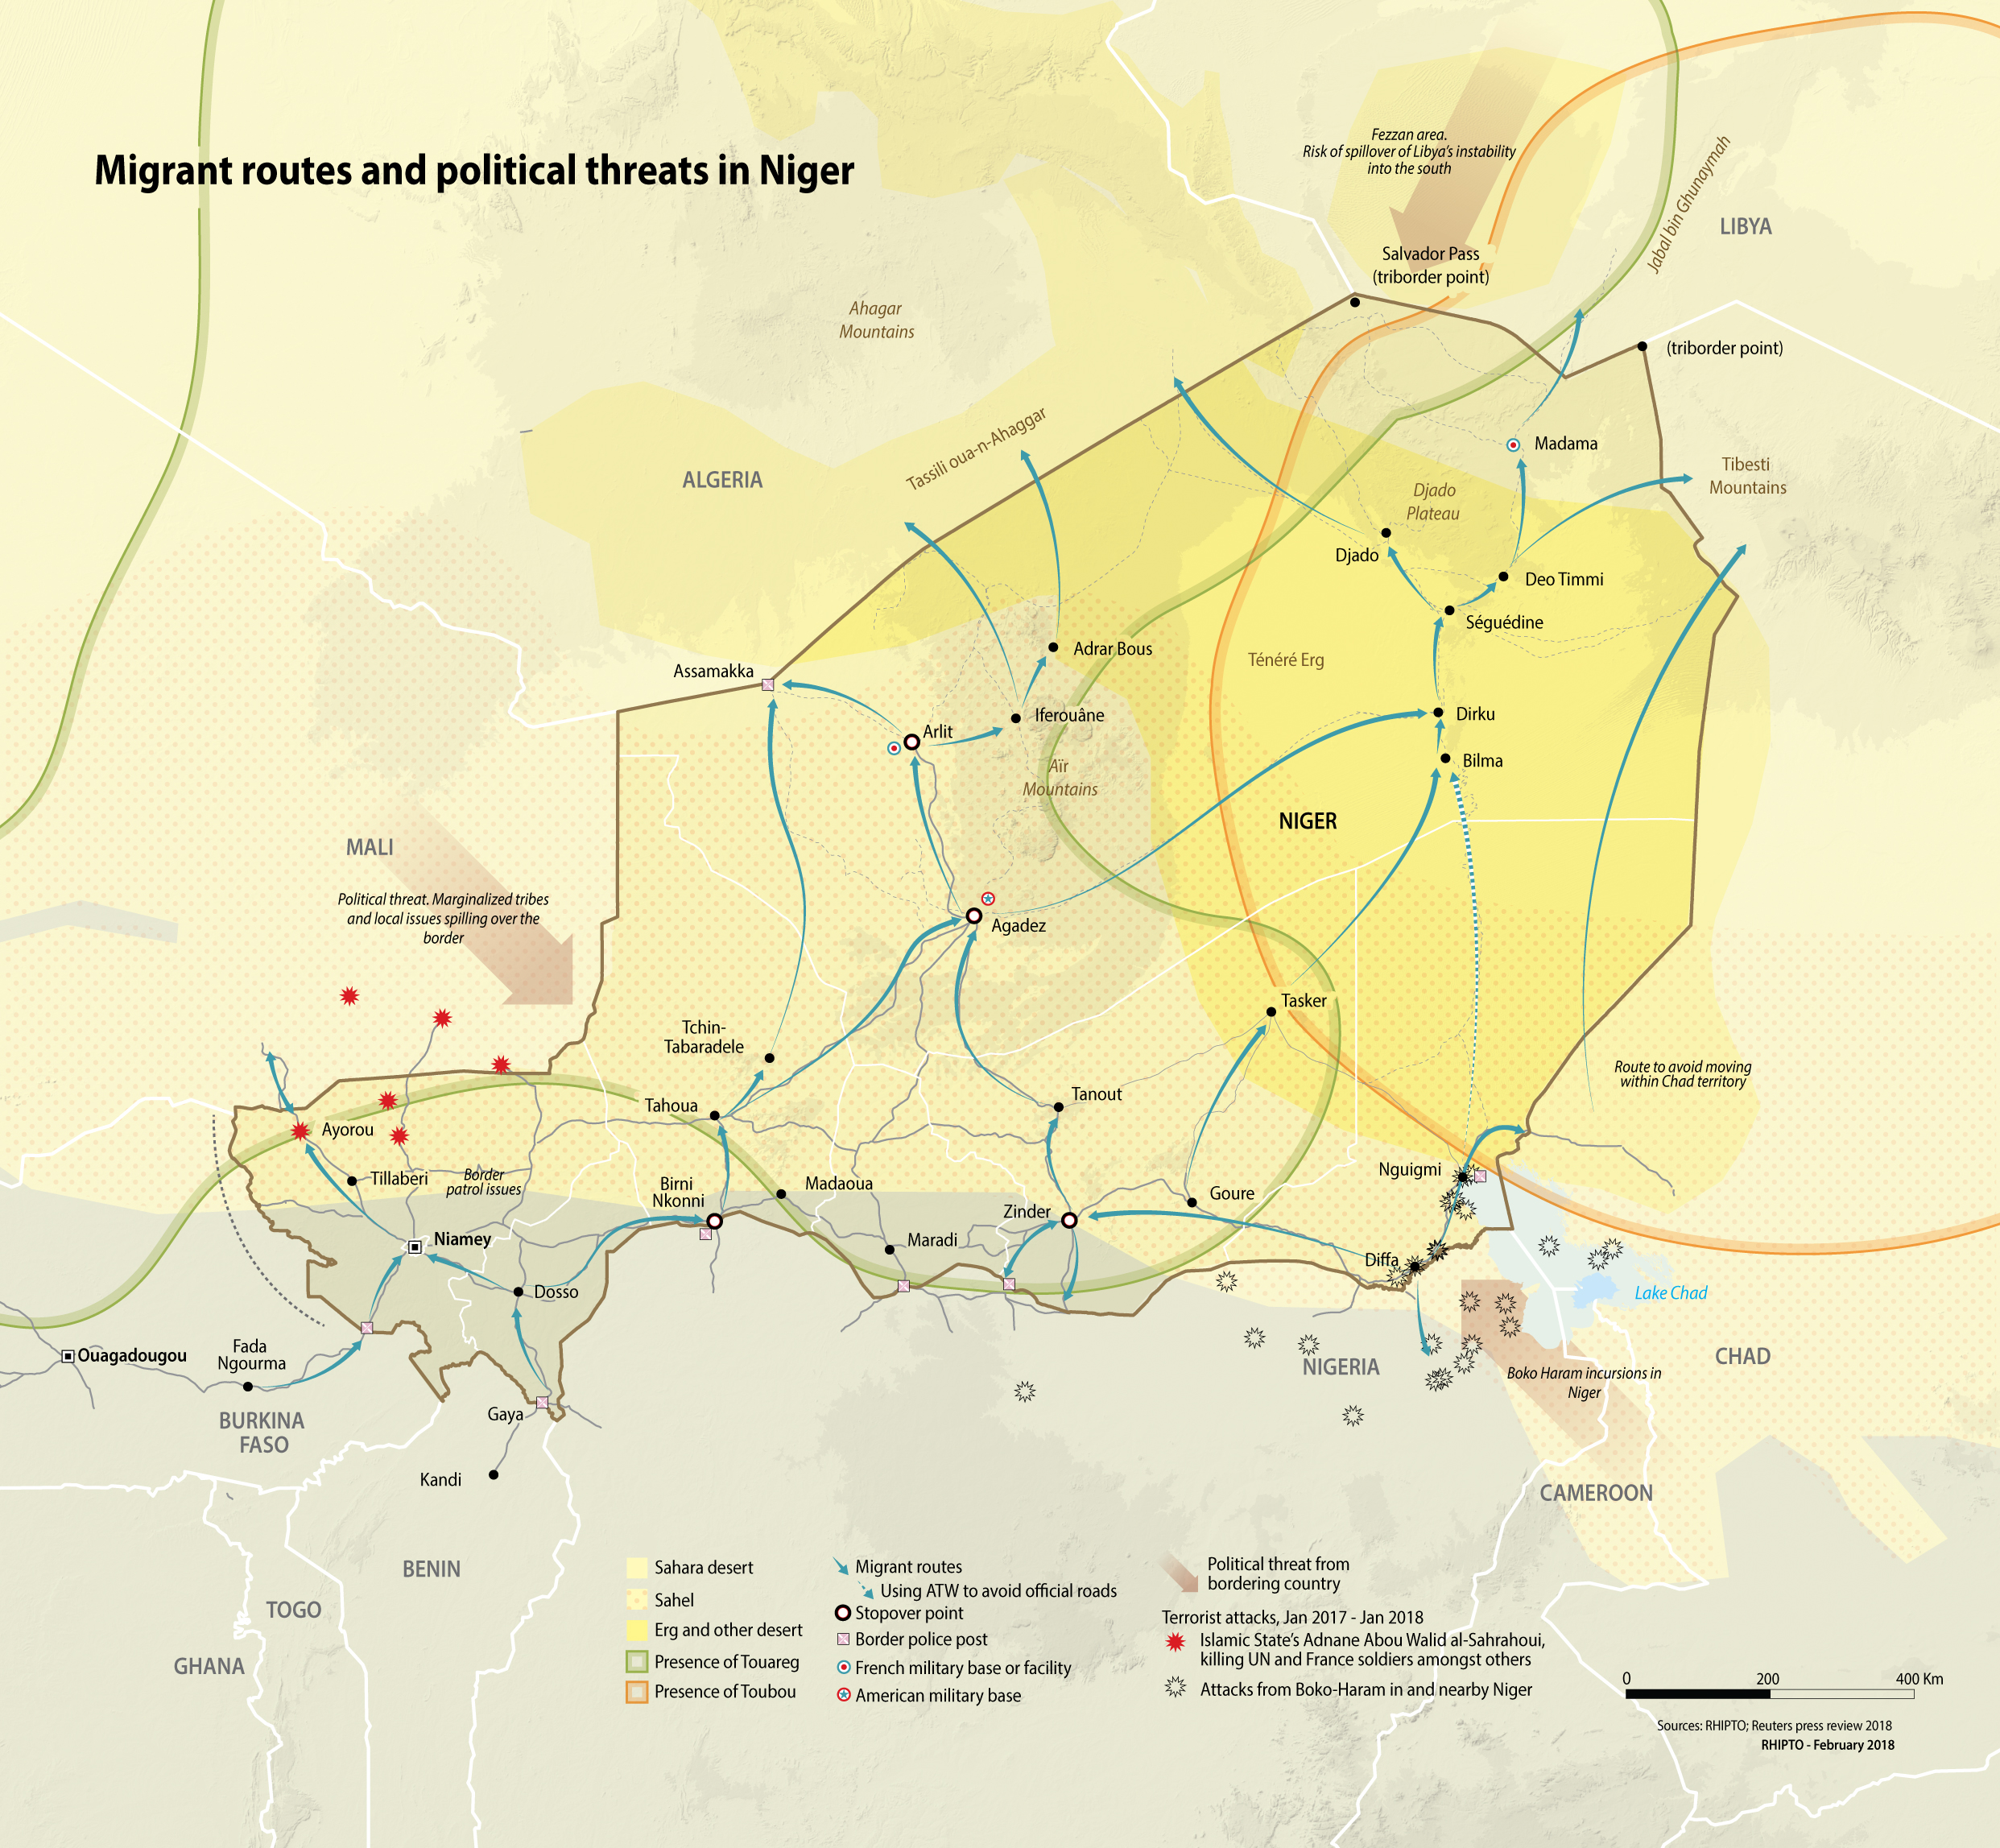 Niger smuggling routes and threats